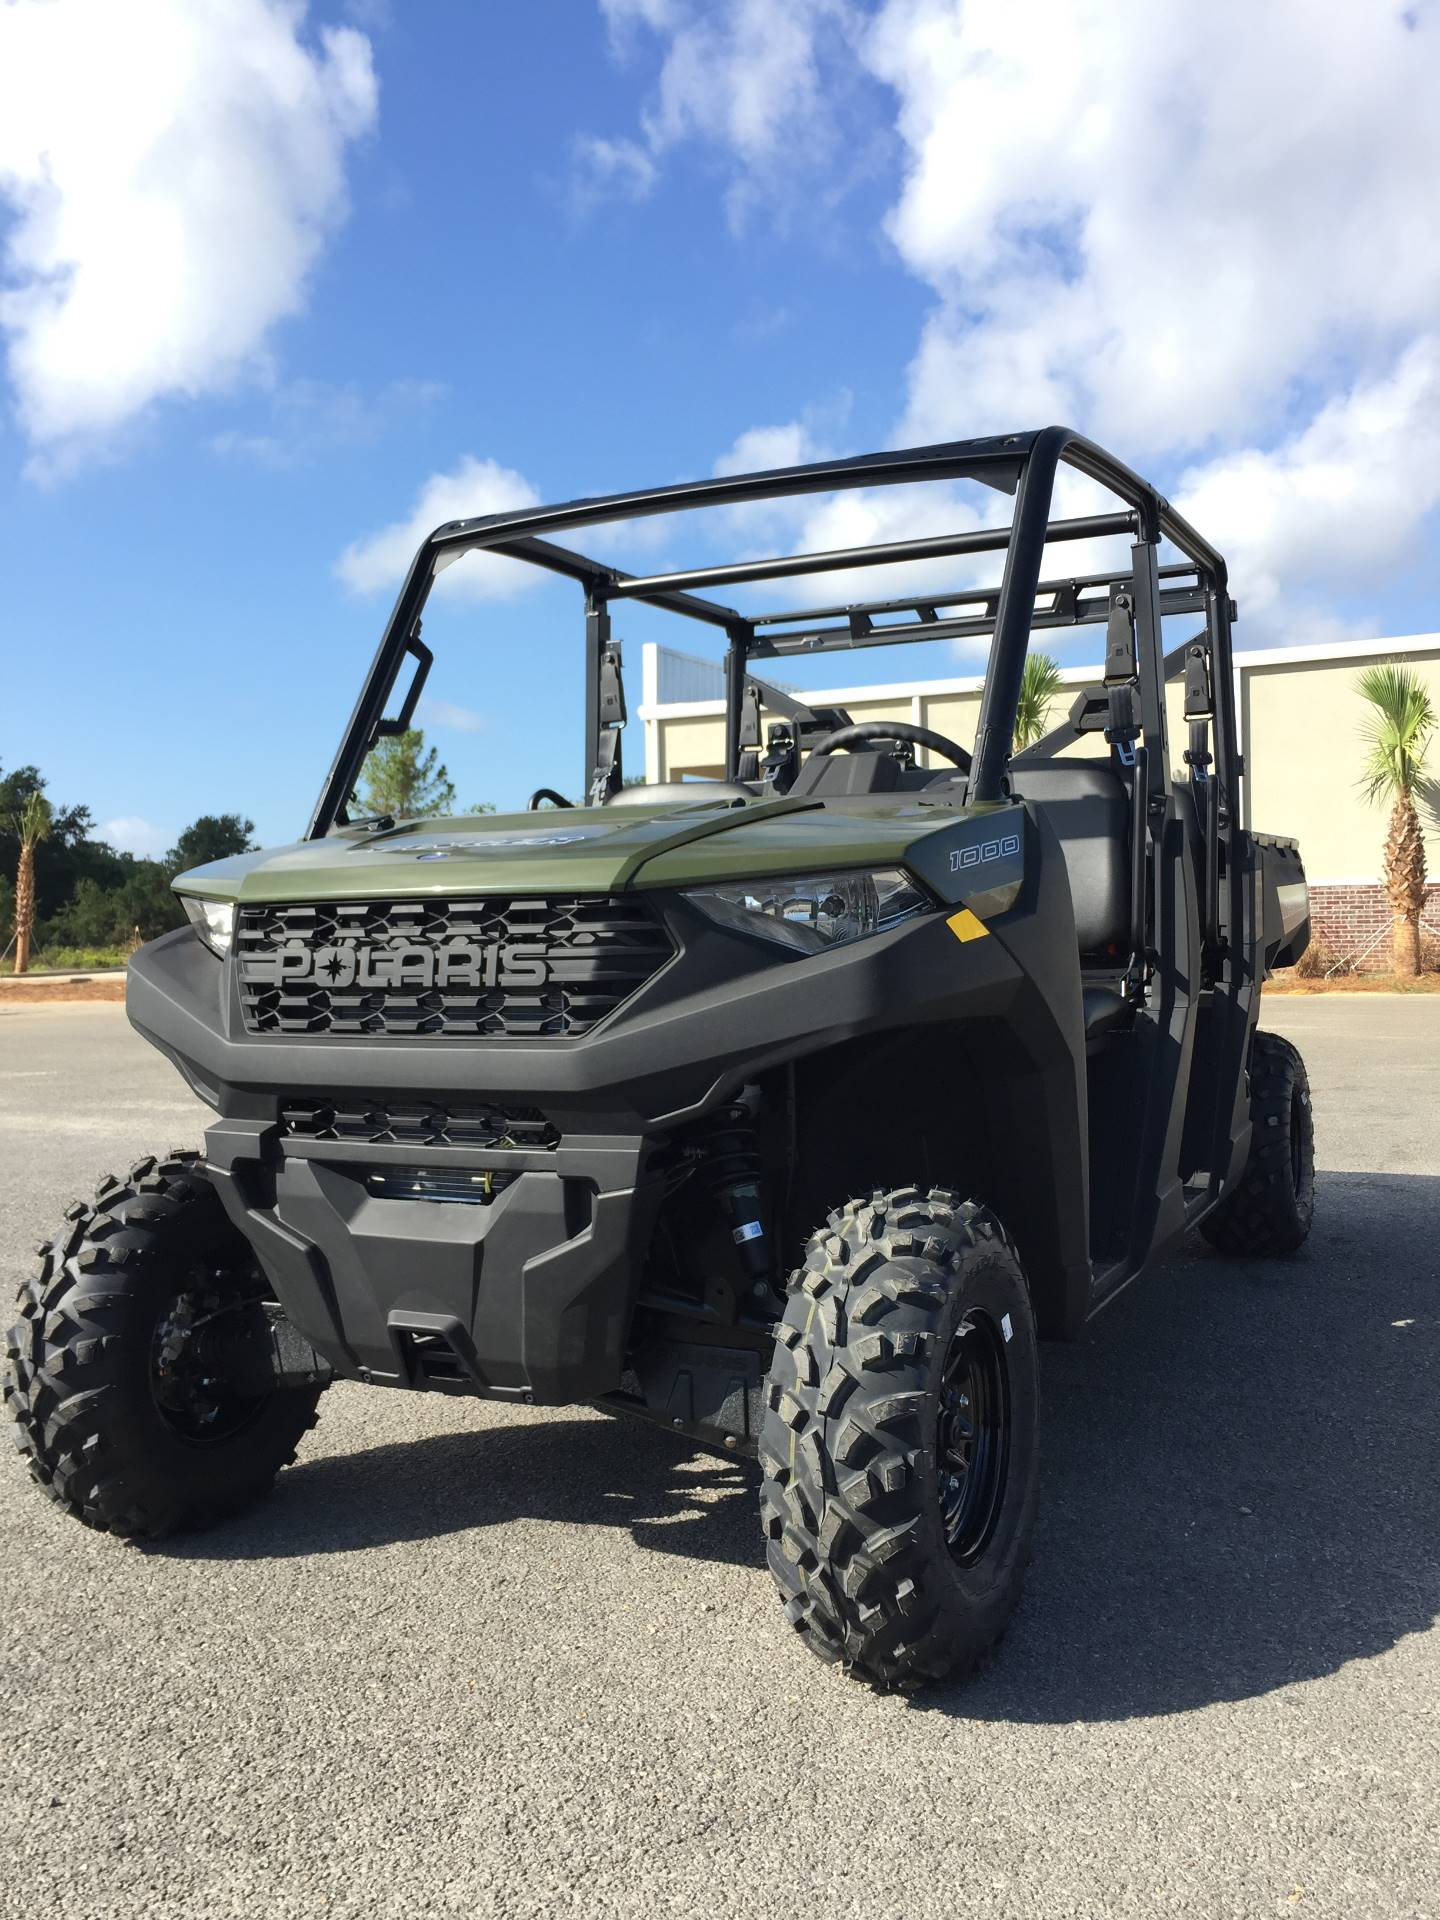 2020 Polaris Ranger Crew 1000 in Pascagoula, Mississippi - Photo 3